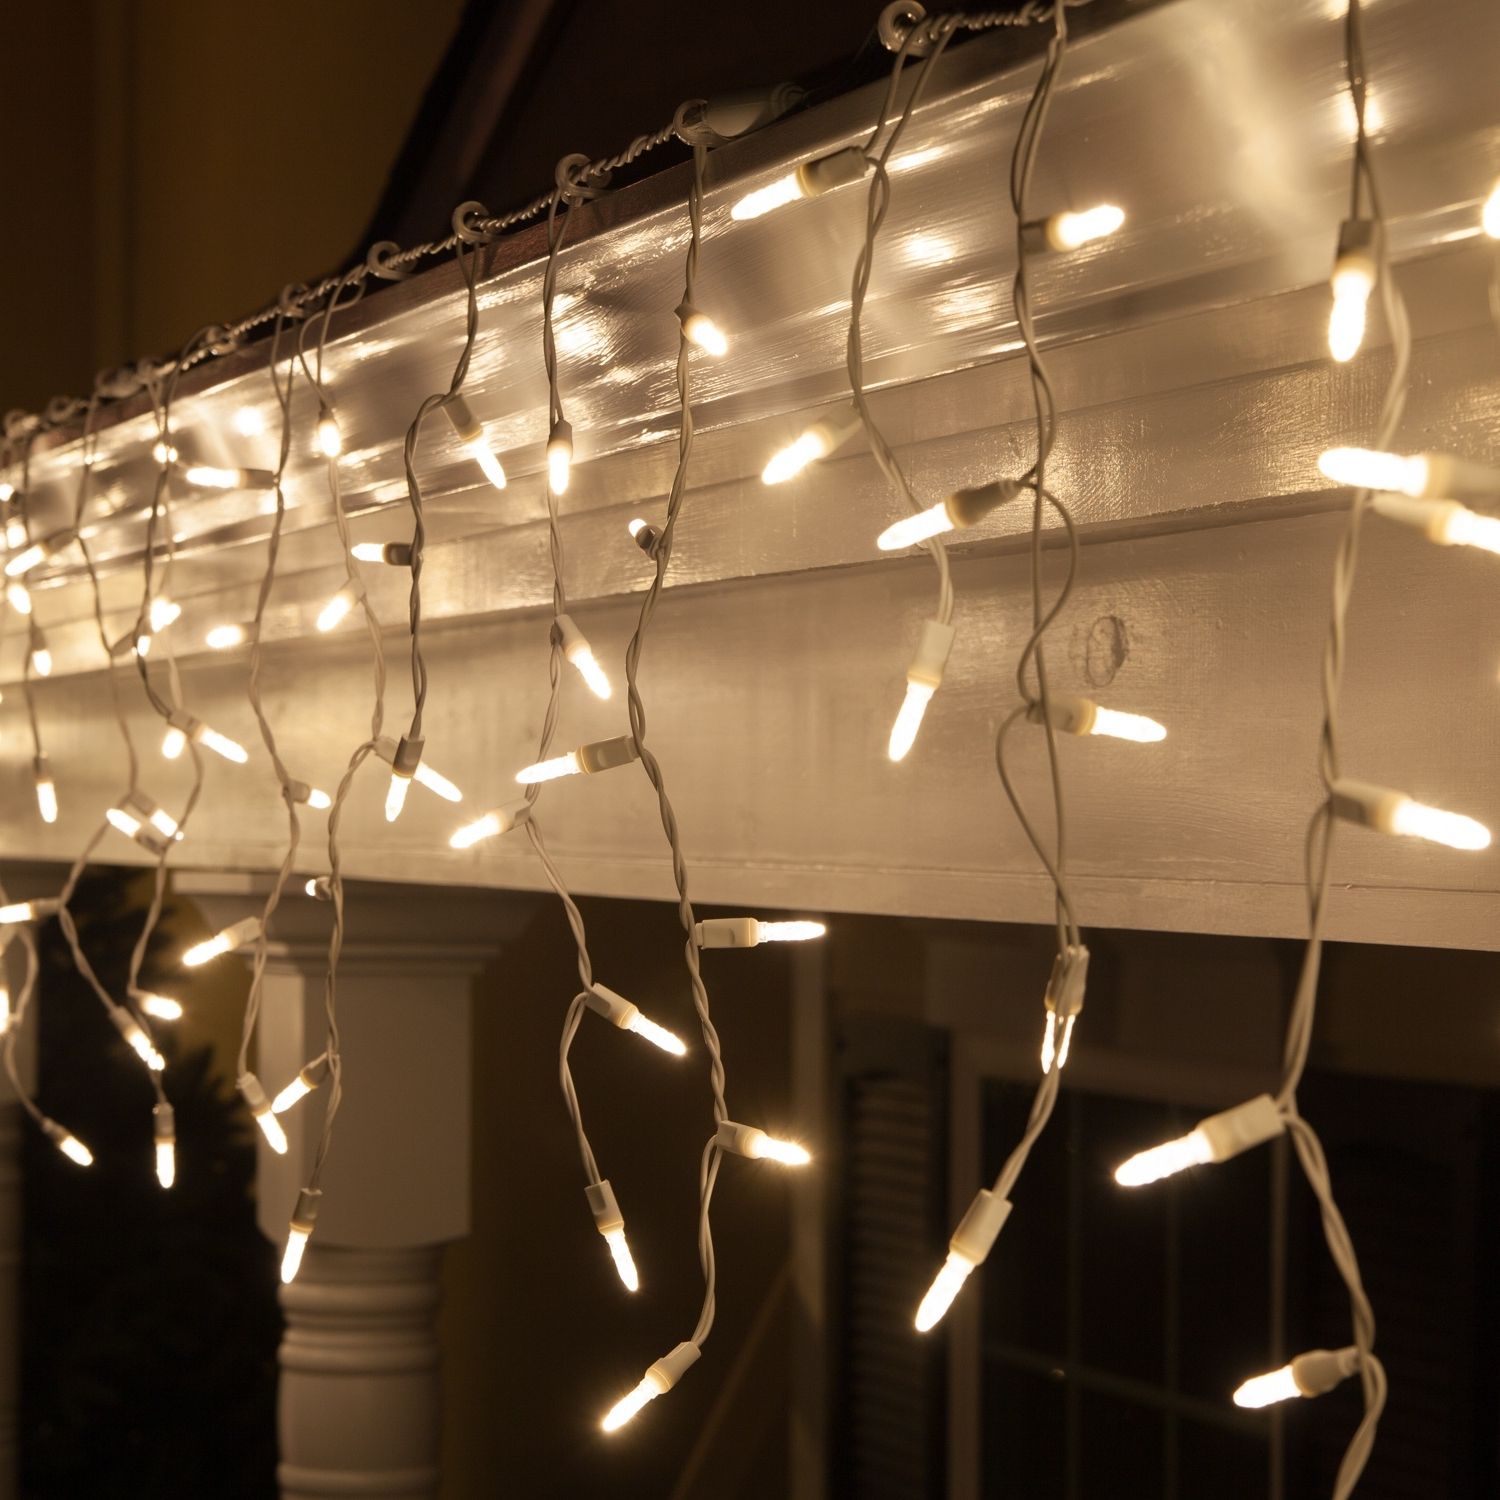 Led Christmas Lights – 70 M5 Warm White Twinkle Led Icicle Lights For Widely Used Outdoor Hanging Icicle Lights (View 3 of 20)